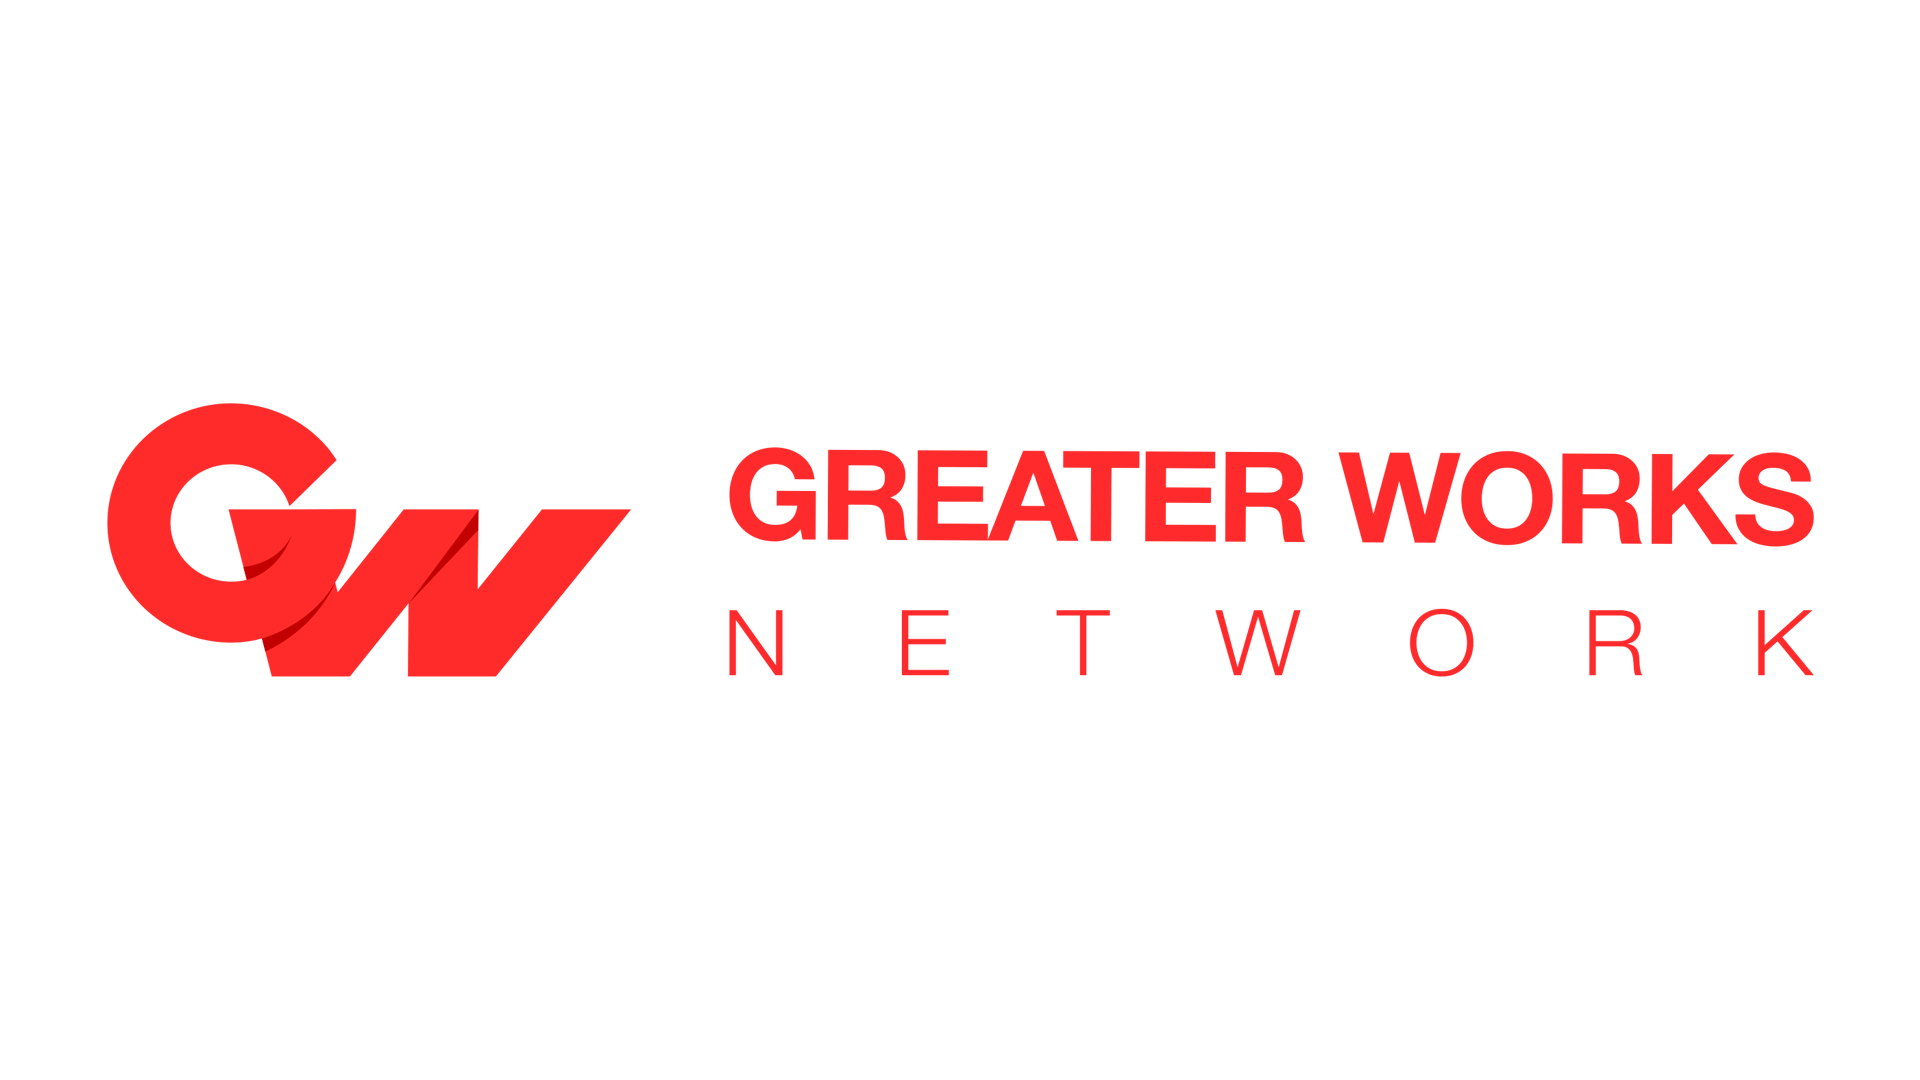 Greater Works Network